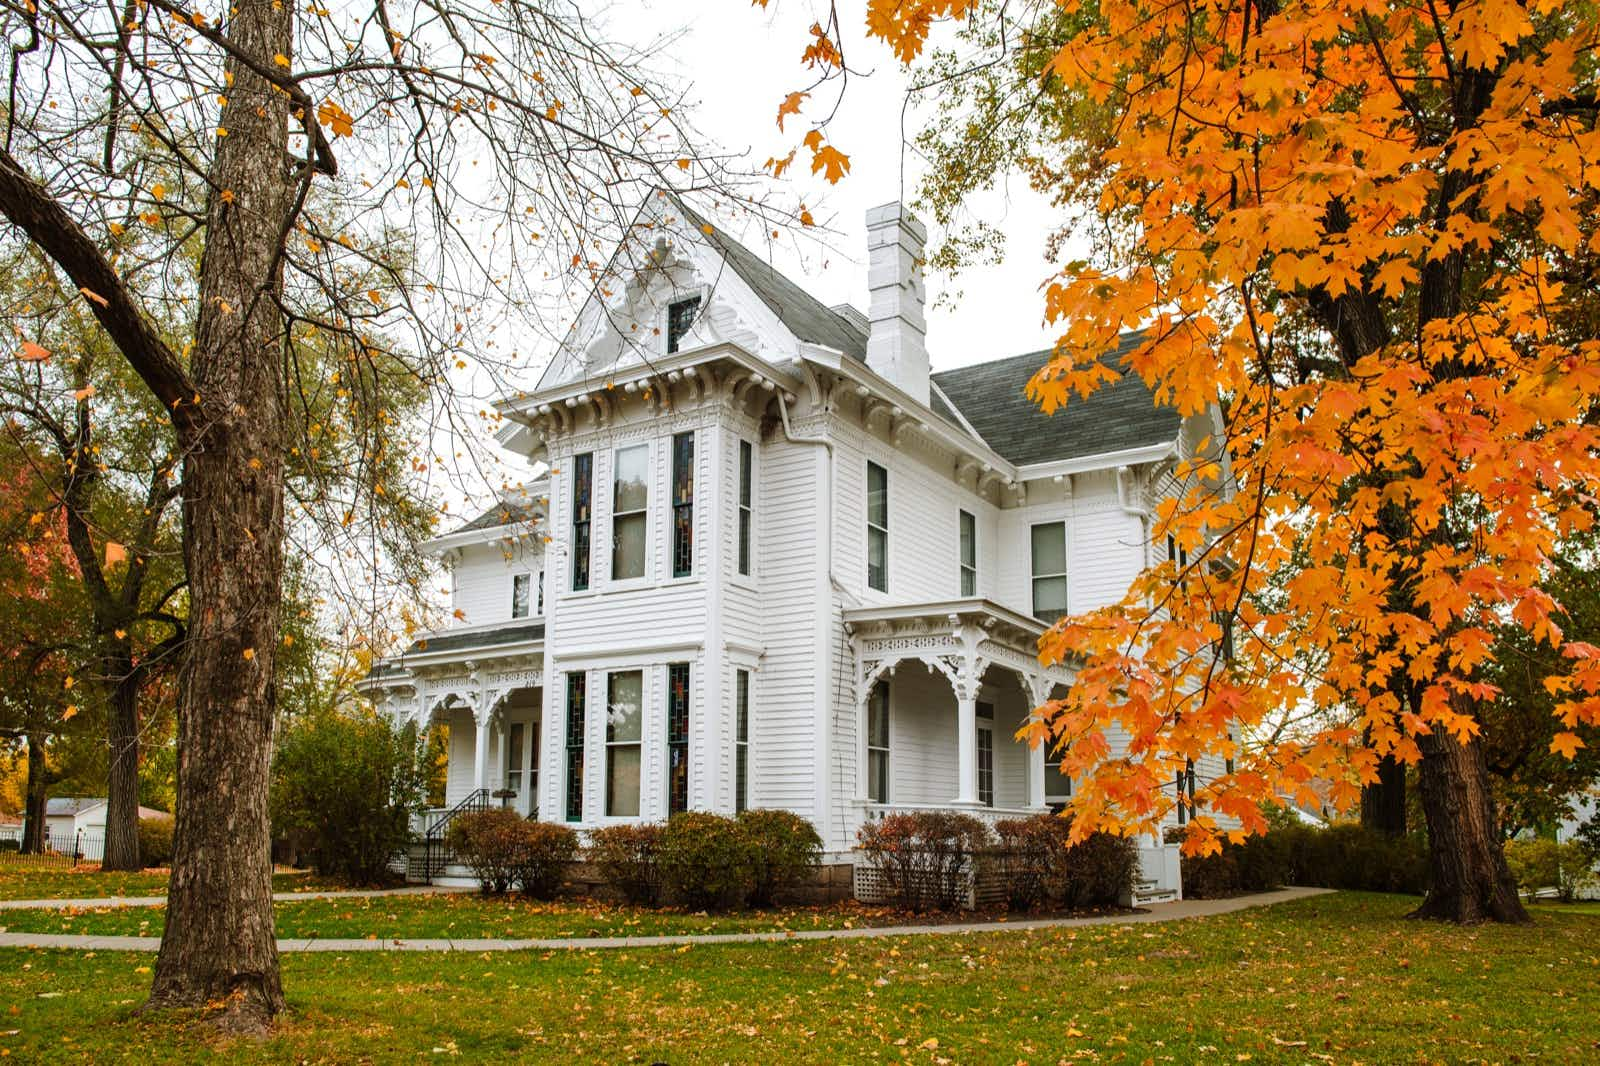 The house on the Harry S. Truman National Historic Site captures the life and times of the 33rd president / Courtesy of City of Independence Department of Parks, Recreation and Tourism